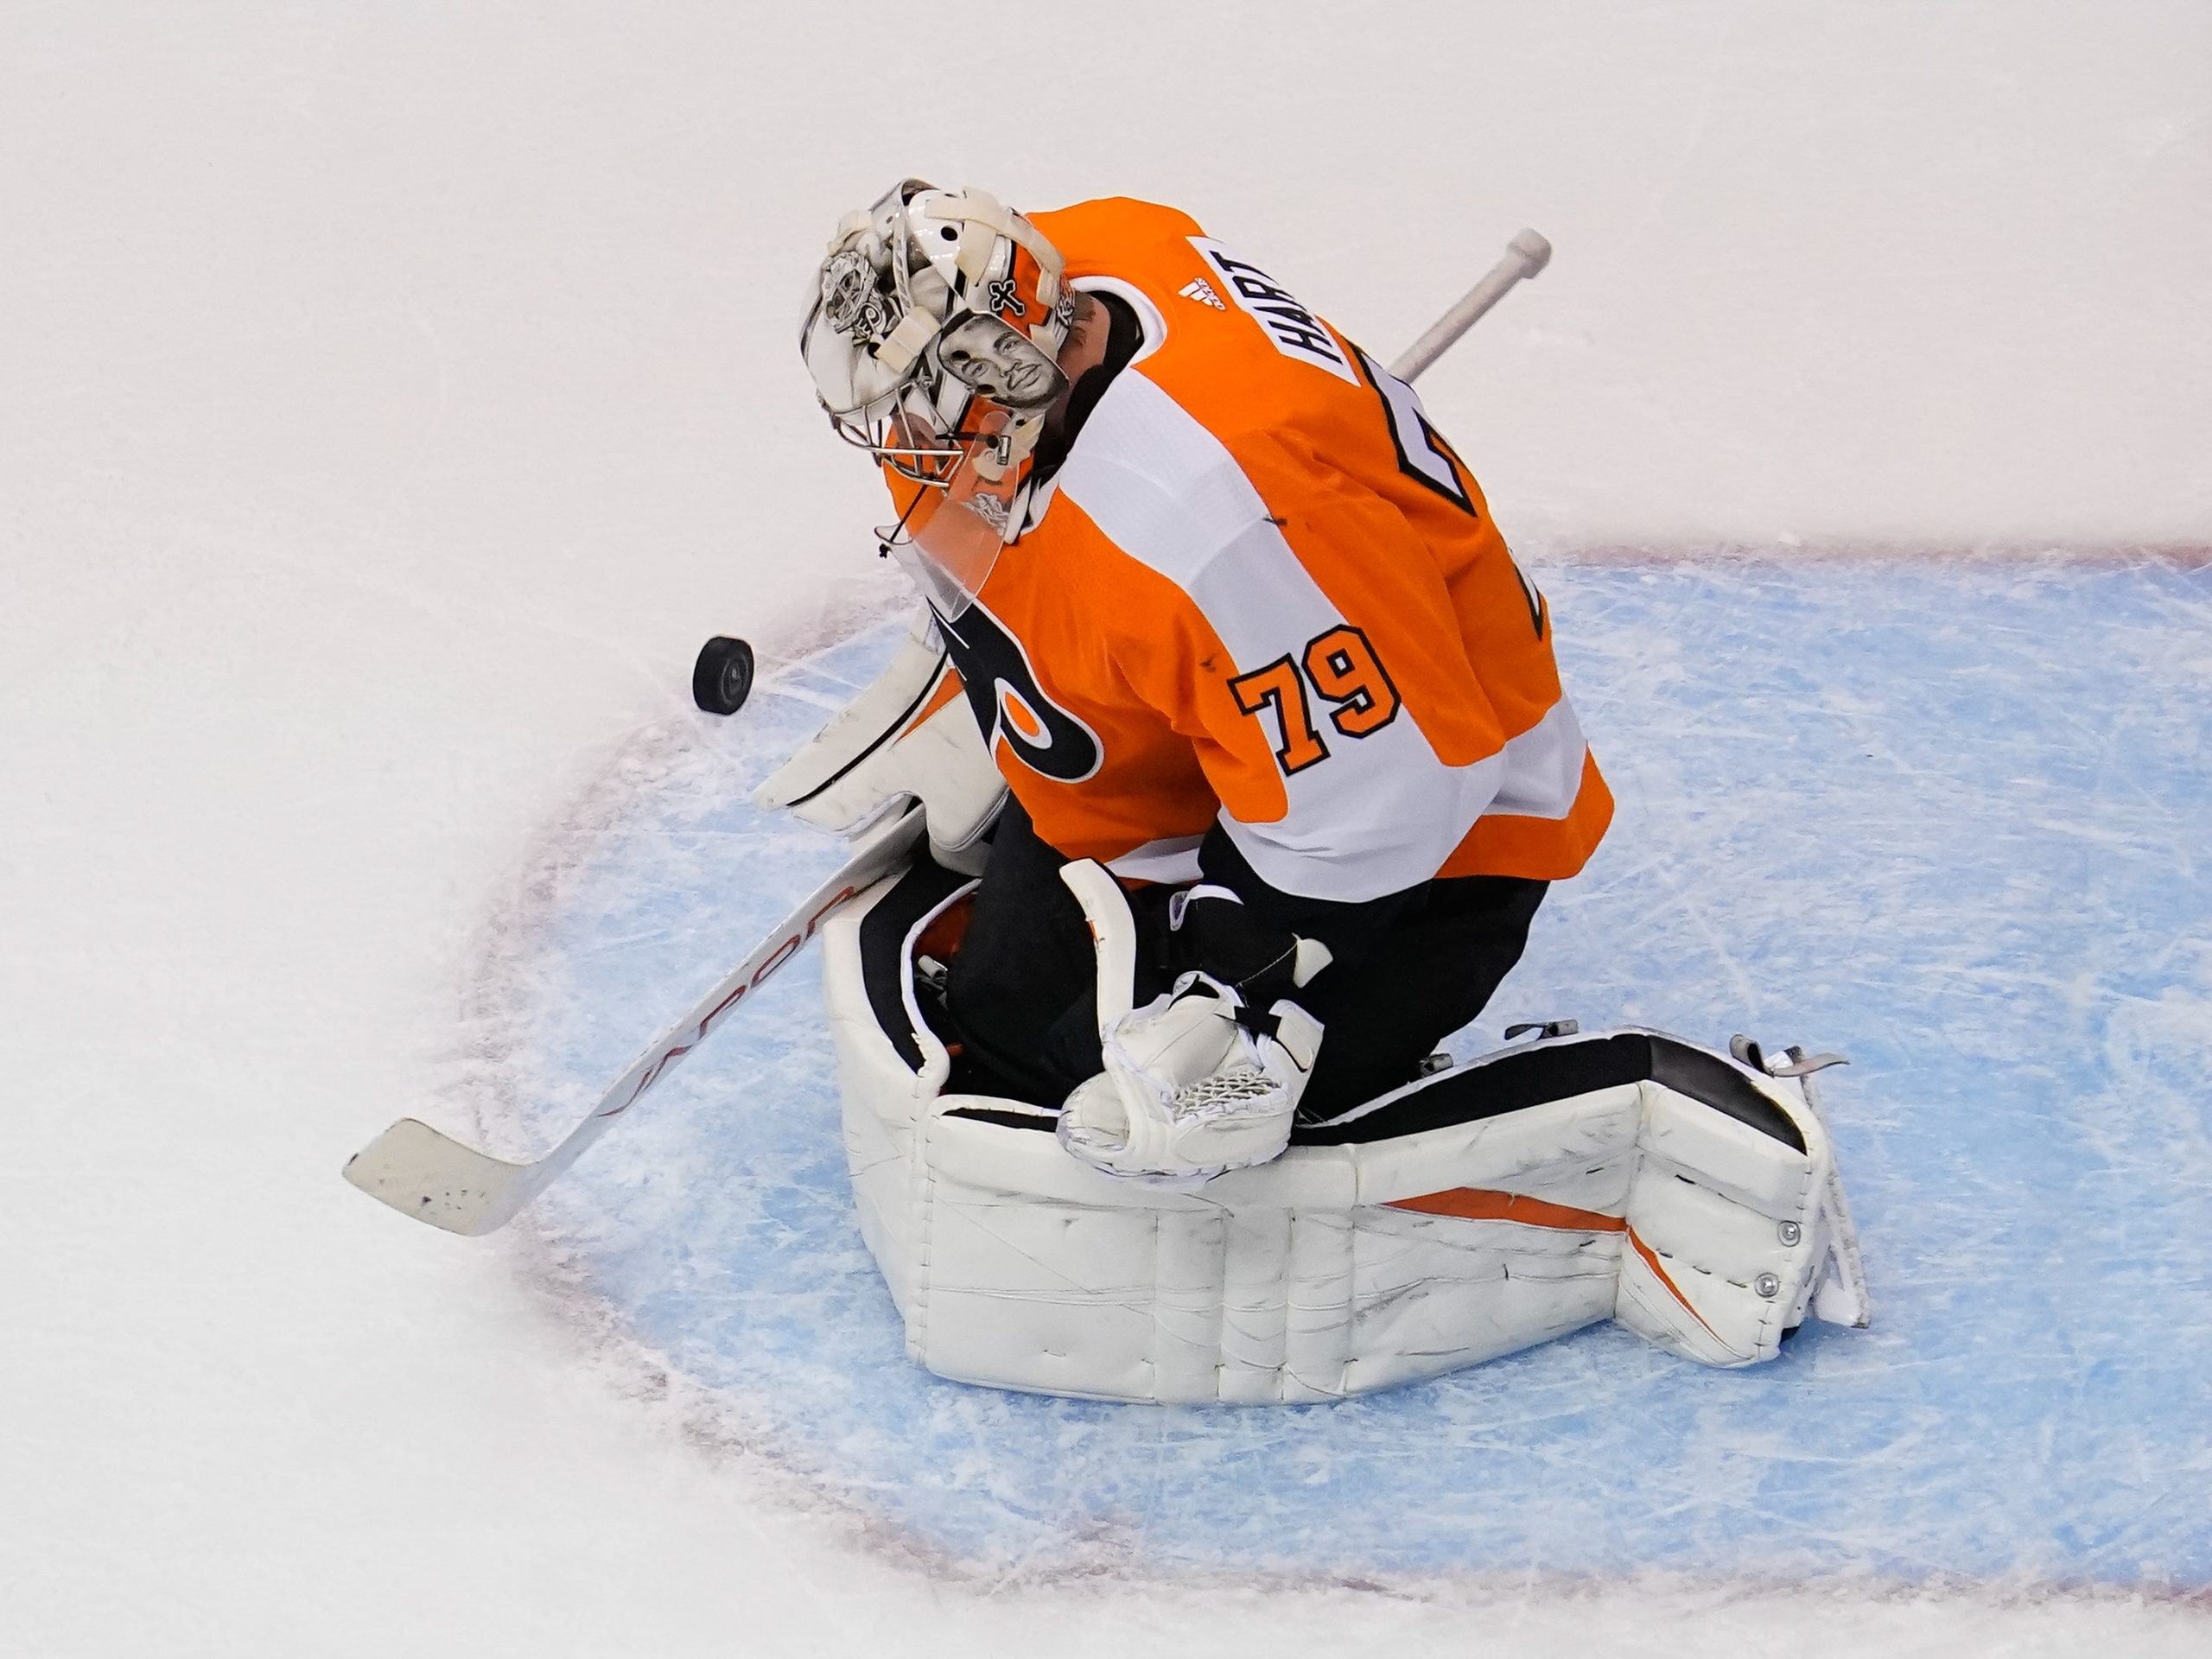 McAvoy Signature, Larkin Suspended, Carter Hart and The Unexplained Thing (October 16) – DobberHockey